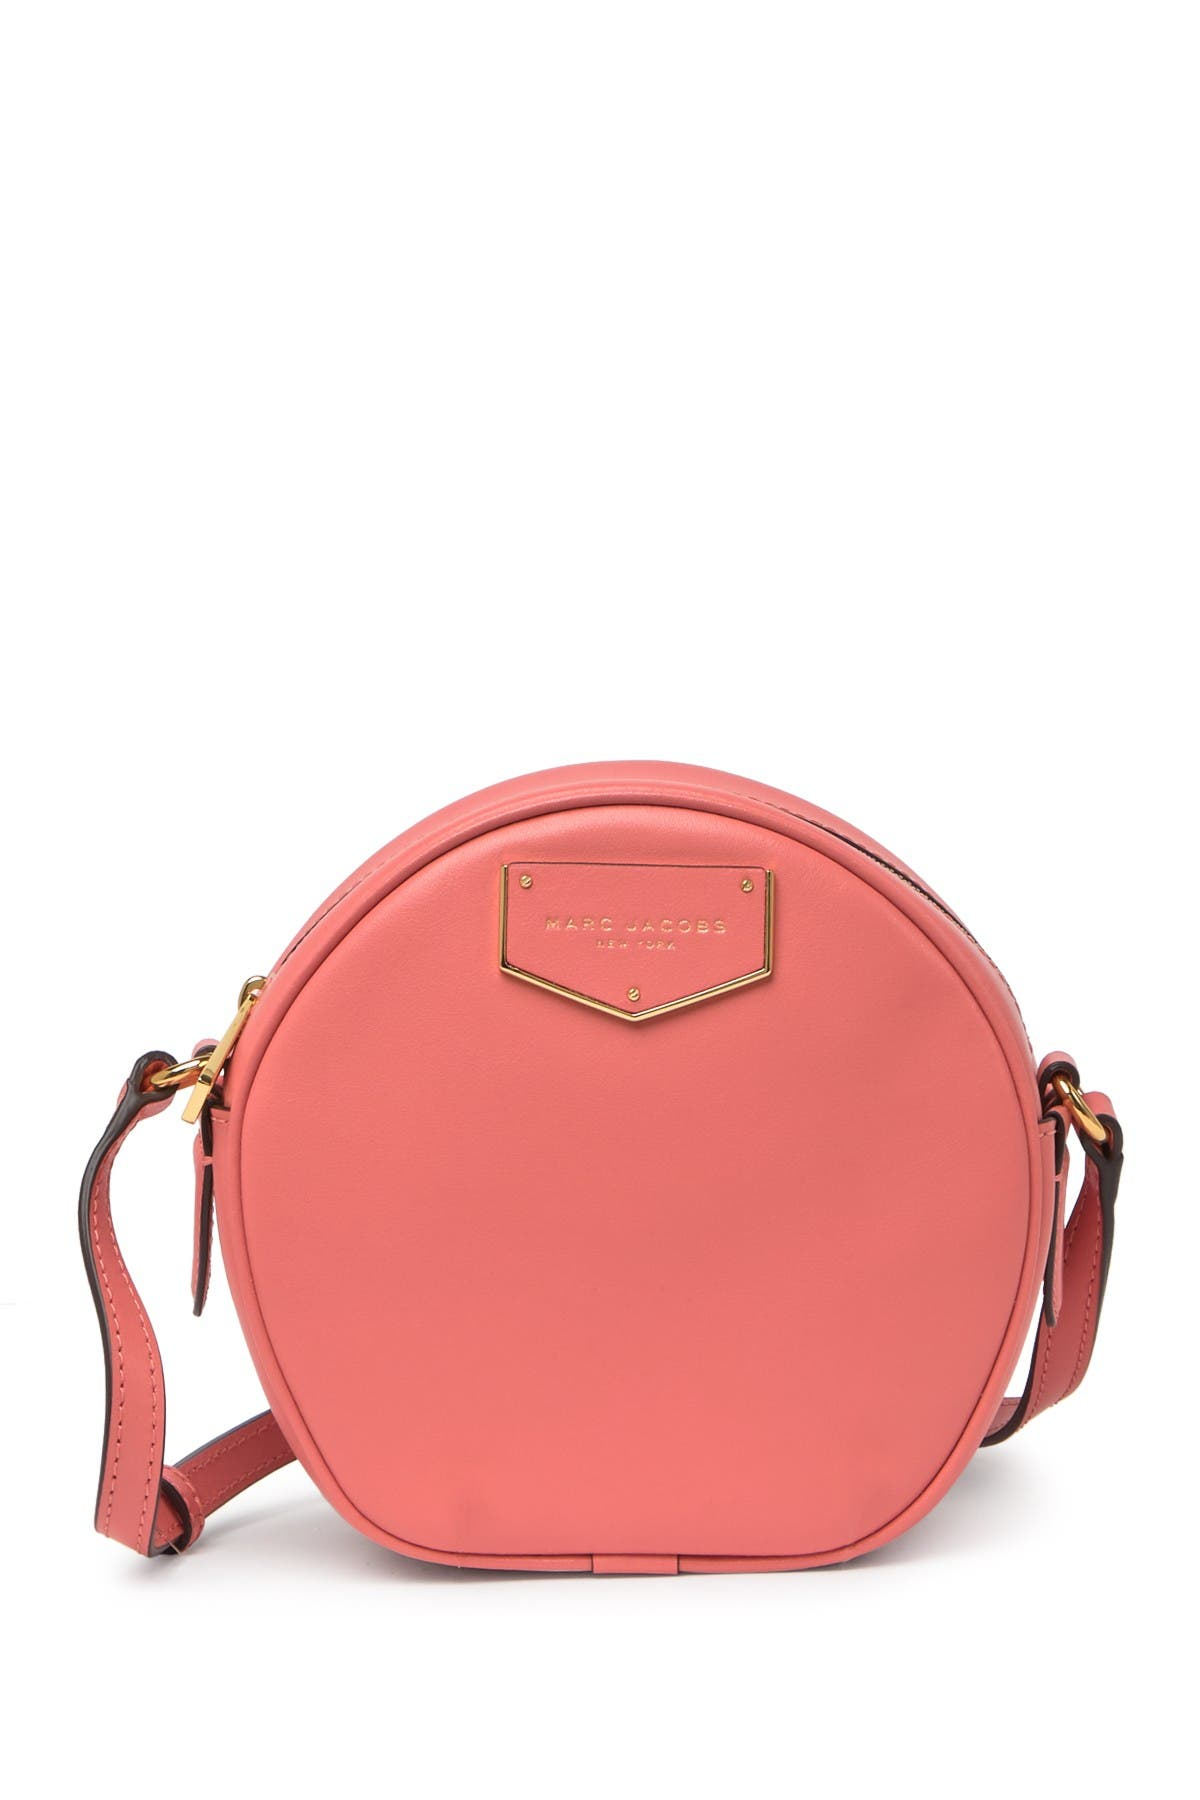 Image of Marc Jacobs Voyager Circle Crossbody Bag